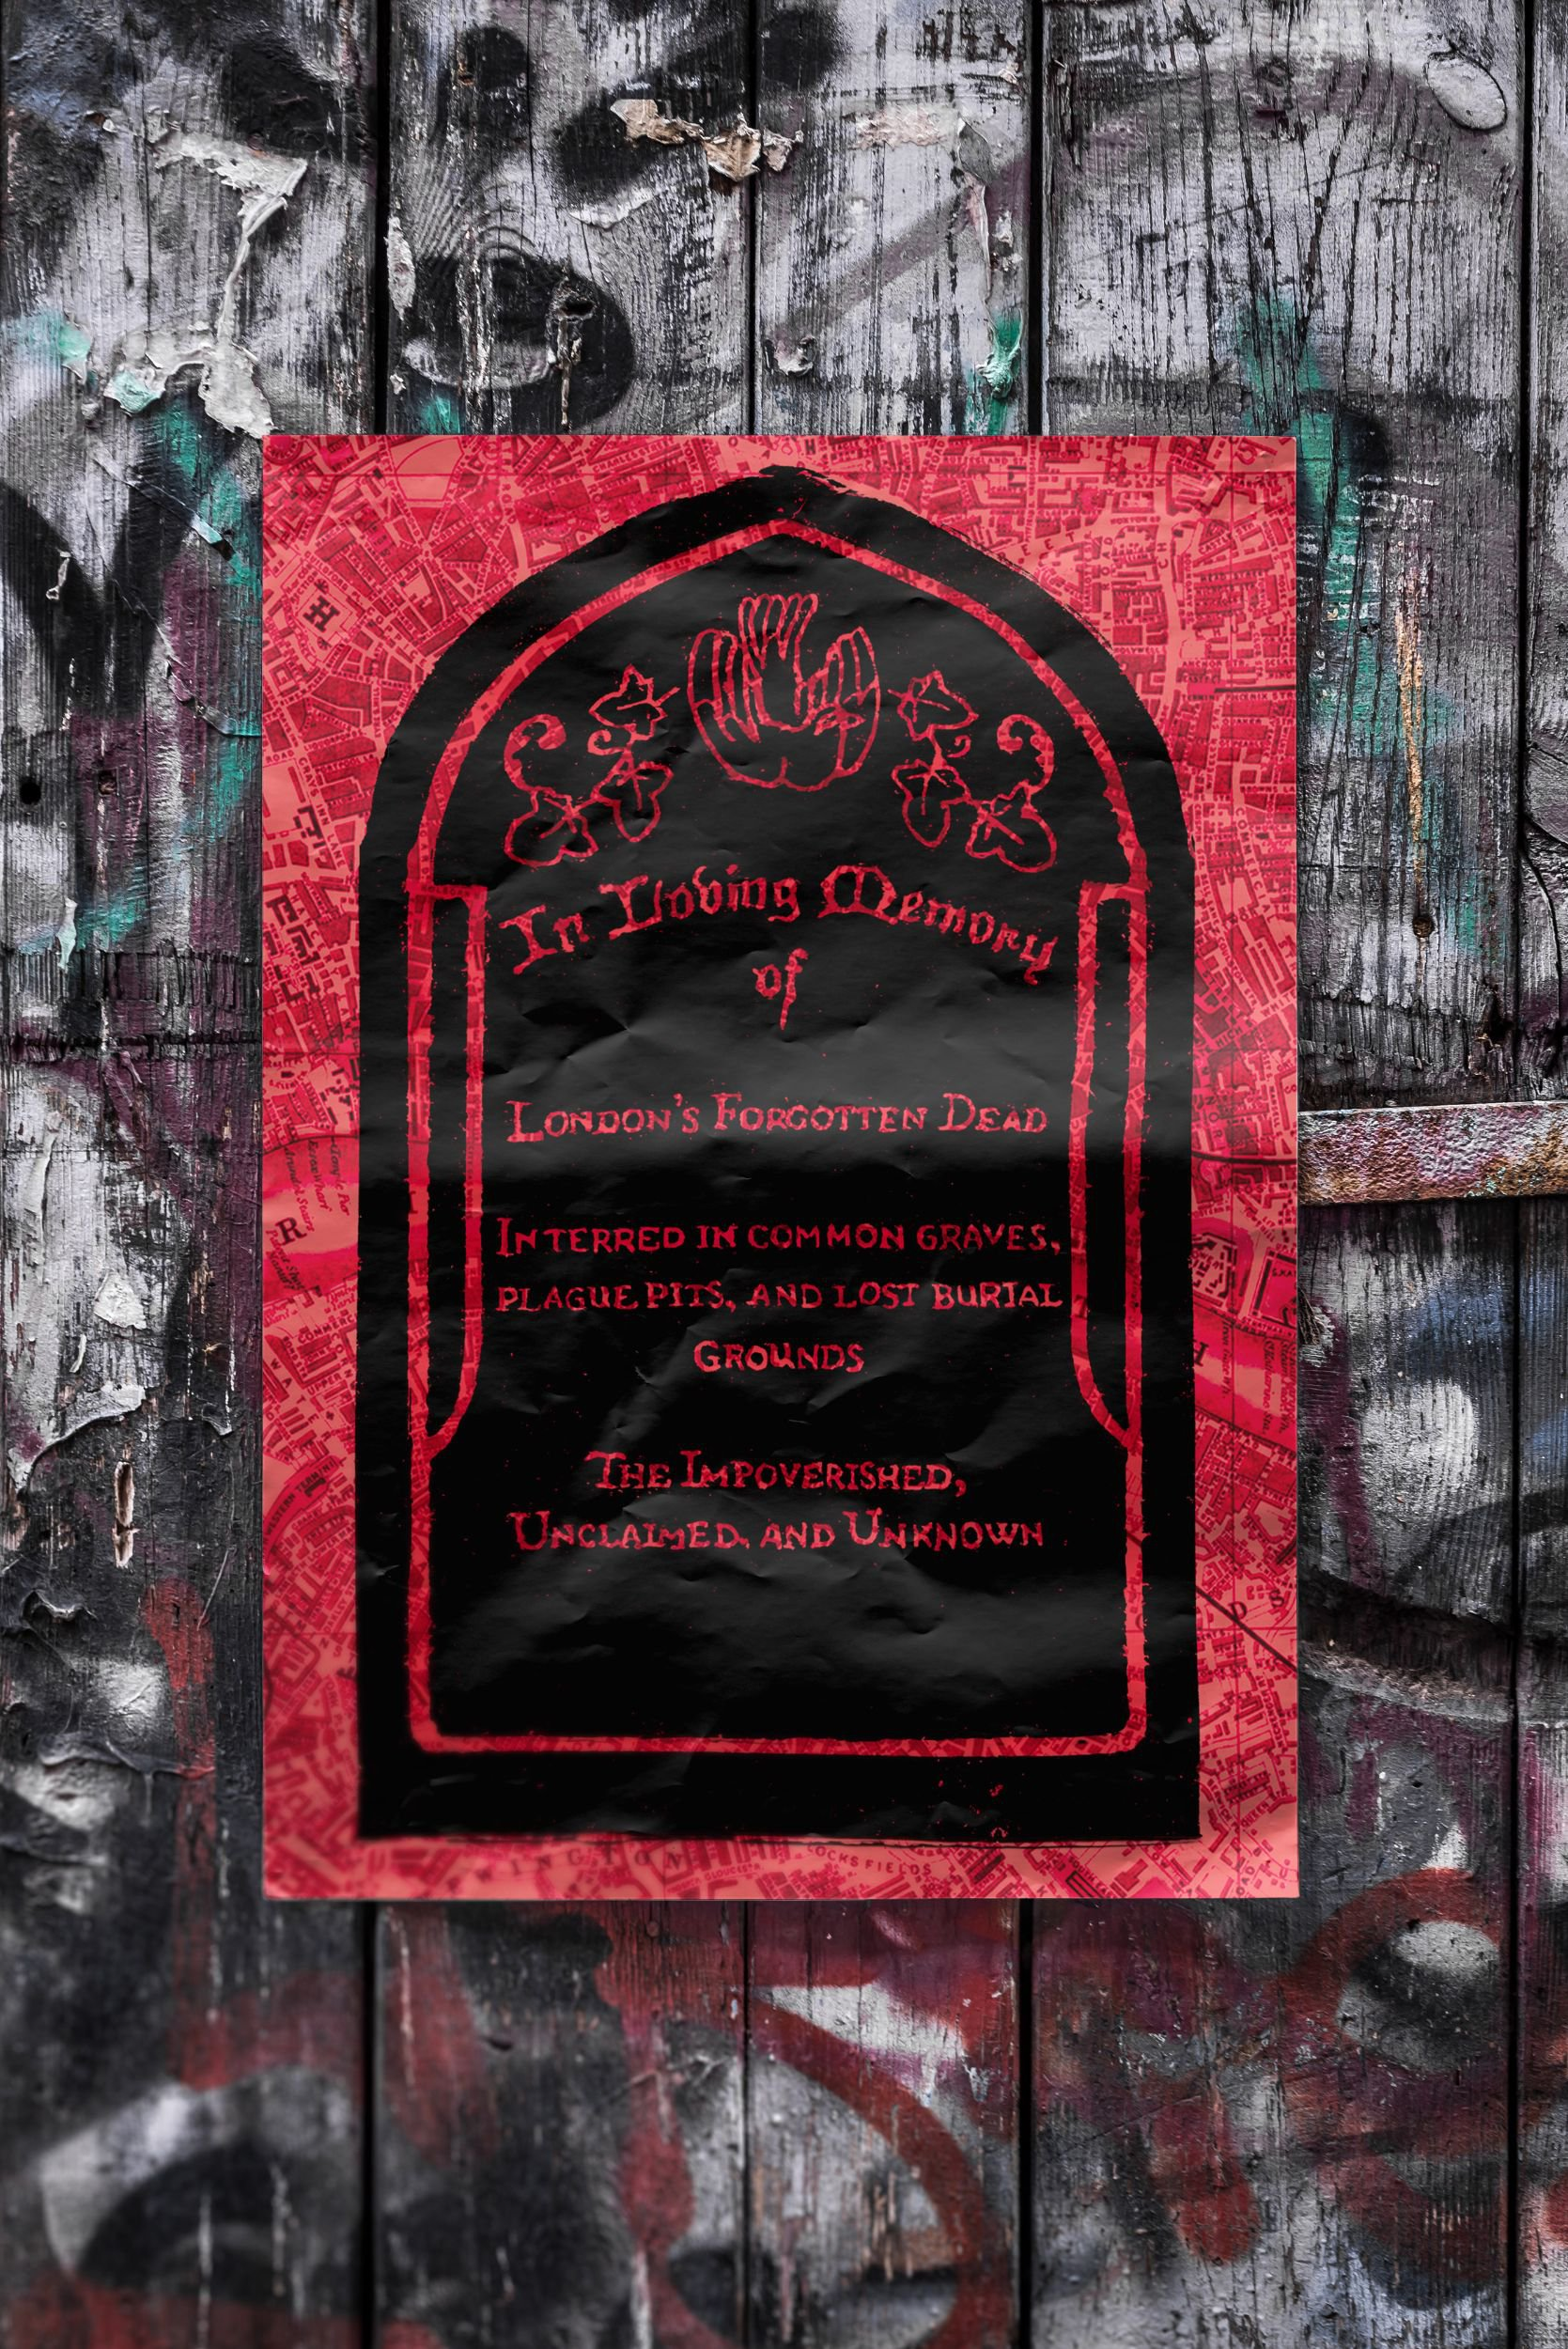 Shannon Johnston Howes_ Finding Stories_Forgotten Dead Gravestone Street Poster.jpg